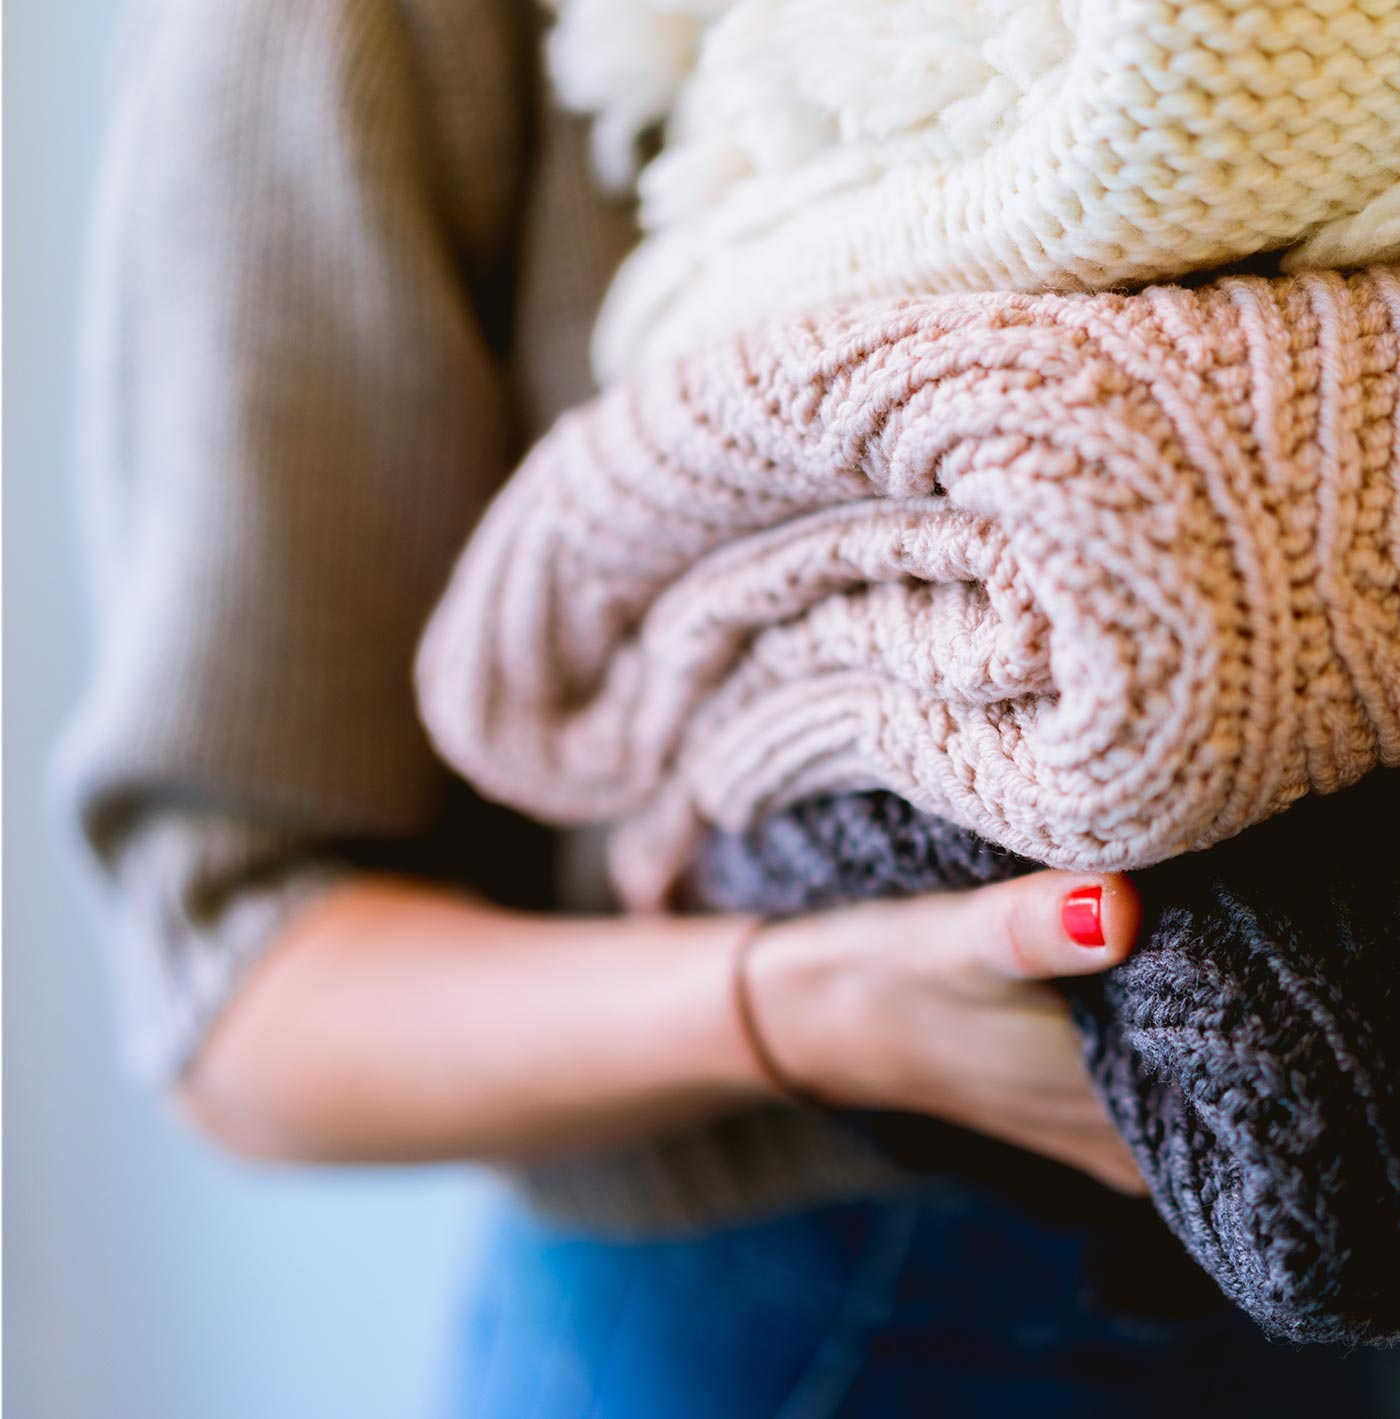 Close-up of a person holding a stack of folded knit sweaters.